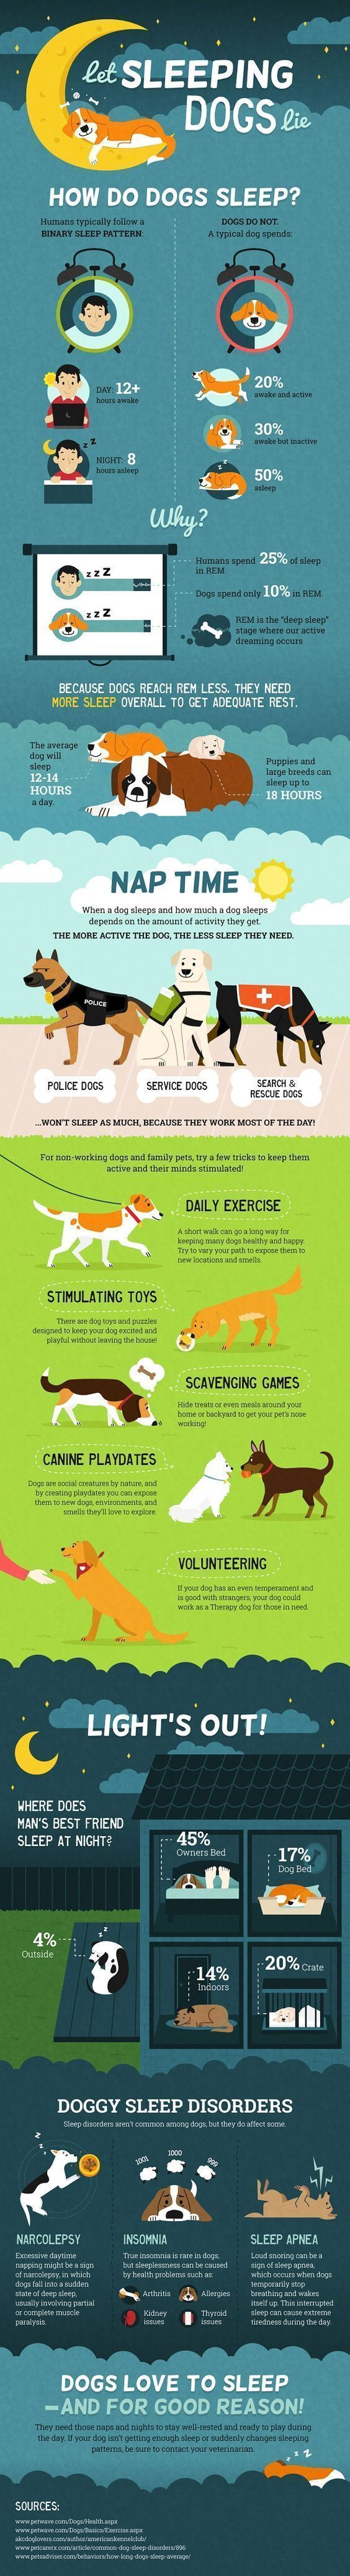 Dog Infographic: Let Sleeping Dogs Lie http://www.dailydogtag.com/lifestyle/let-sleeping-dogs-lie-but-how-much-sleep-do-dogs-need/?utm_content=buffer2d1b5&utm_medium=social&utm_source=pinterest.com&utm_campaign=buffer#_a5y_p=4157036: #doginfographic